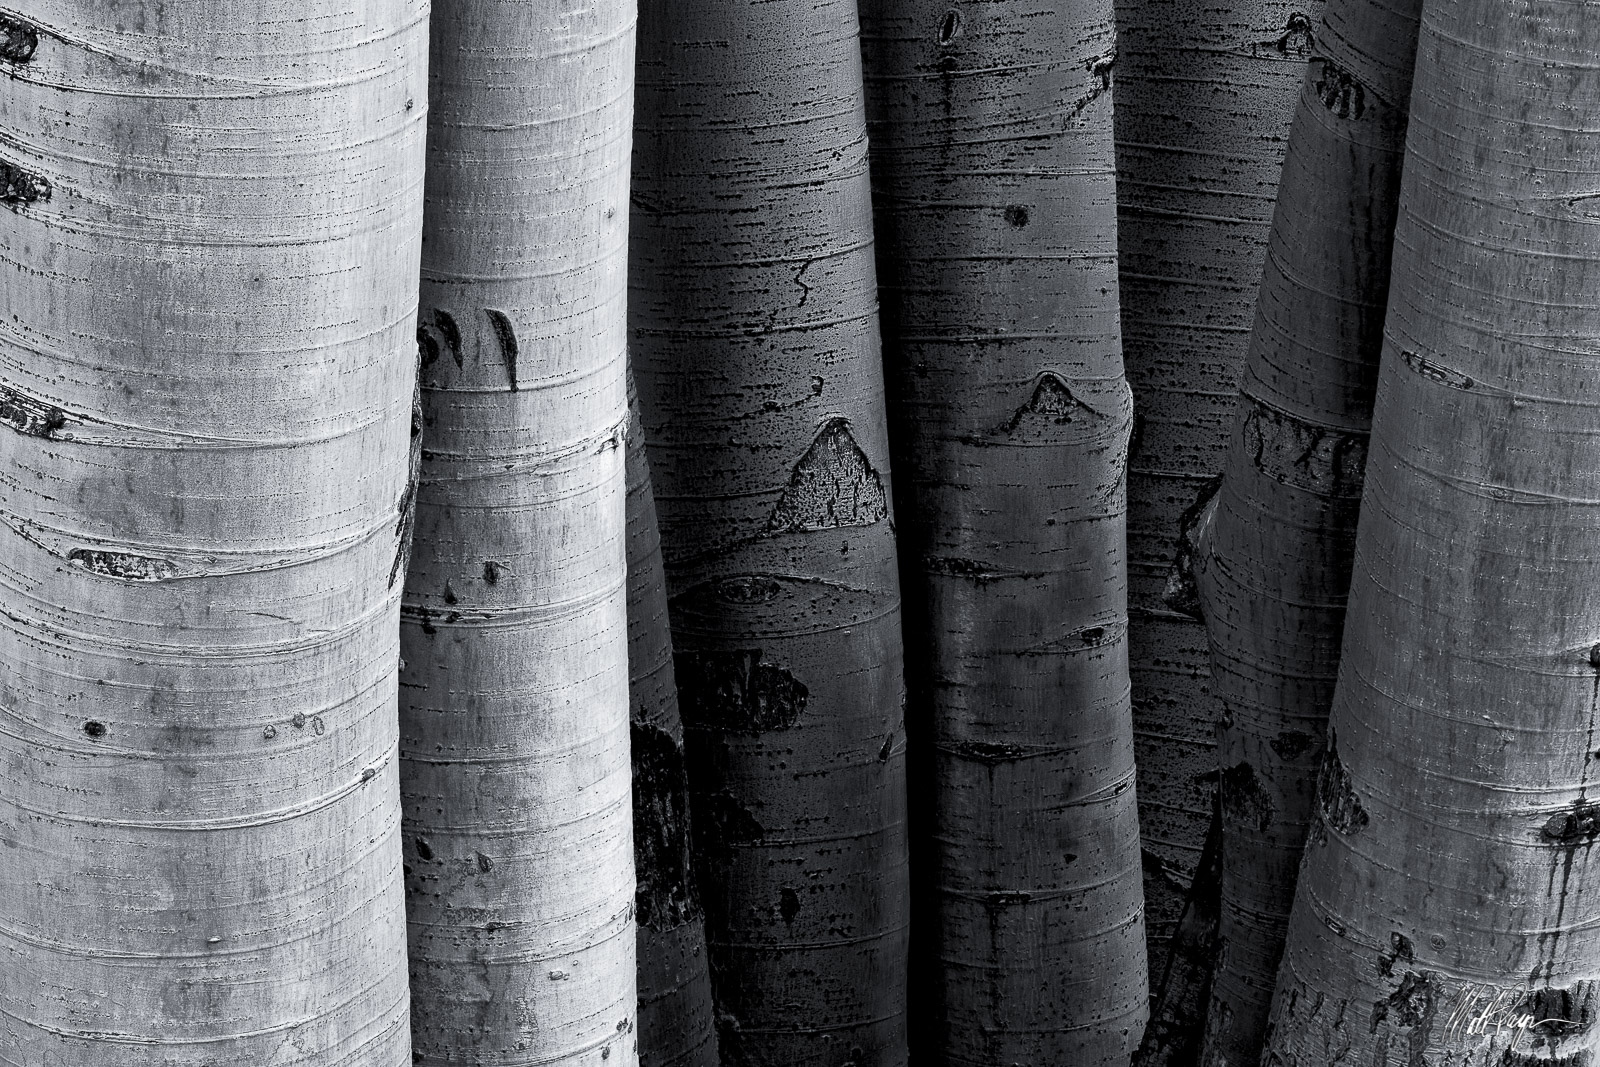 8, Aspen Trees, Autumn, Black and White, Colorado, Fall, Texture, cluster, detail, side-by-side, West Elk Mountains, photo